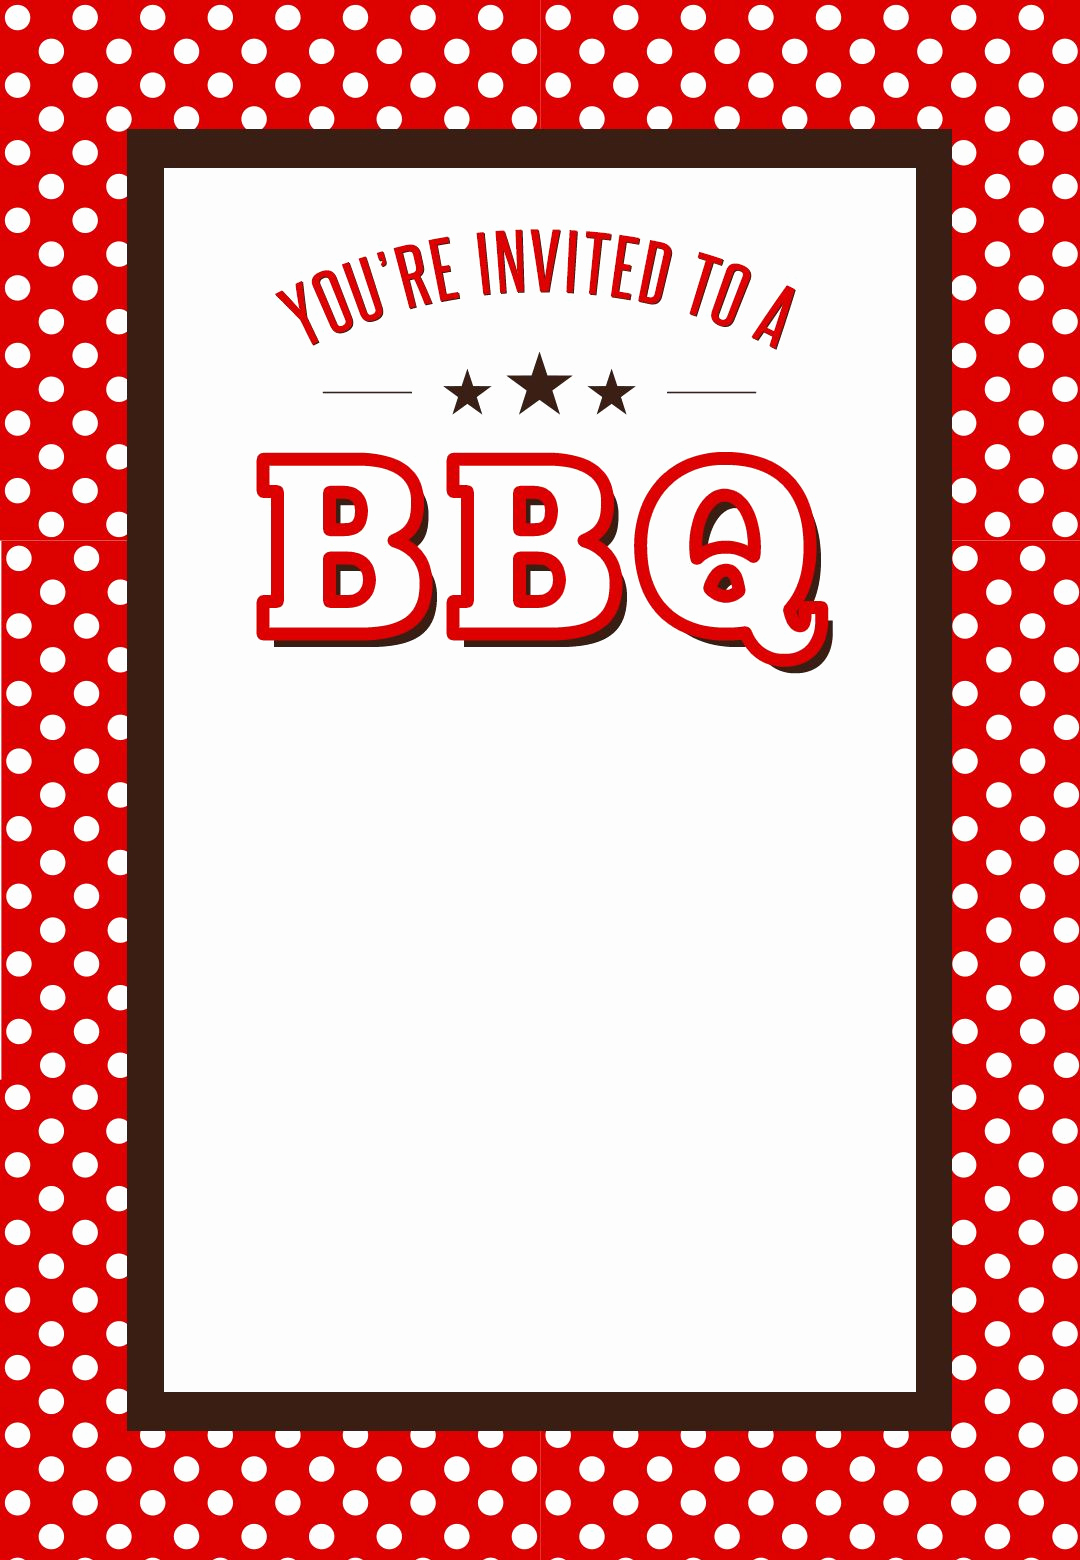 Bbq Invitation Template Word Lovely Bbq Party Invitation Free Printables